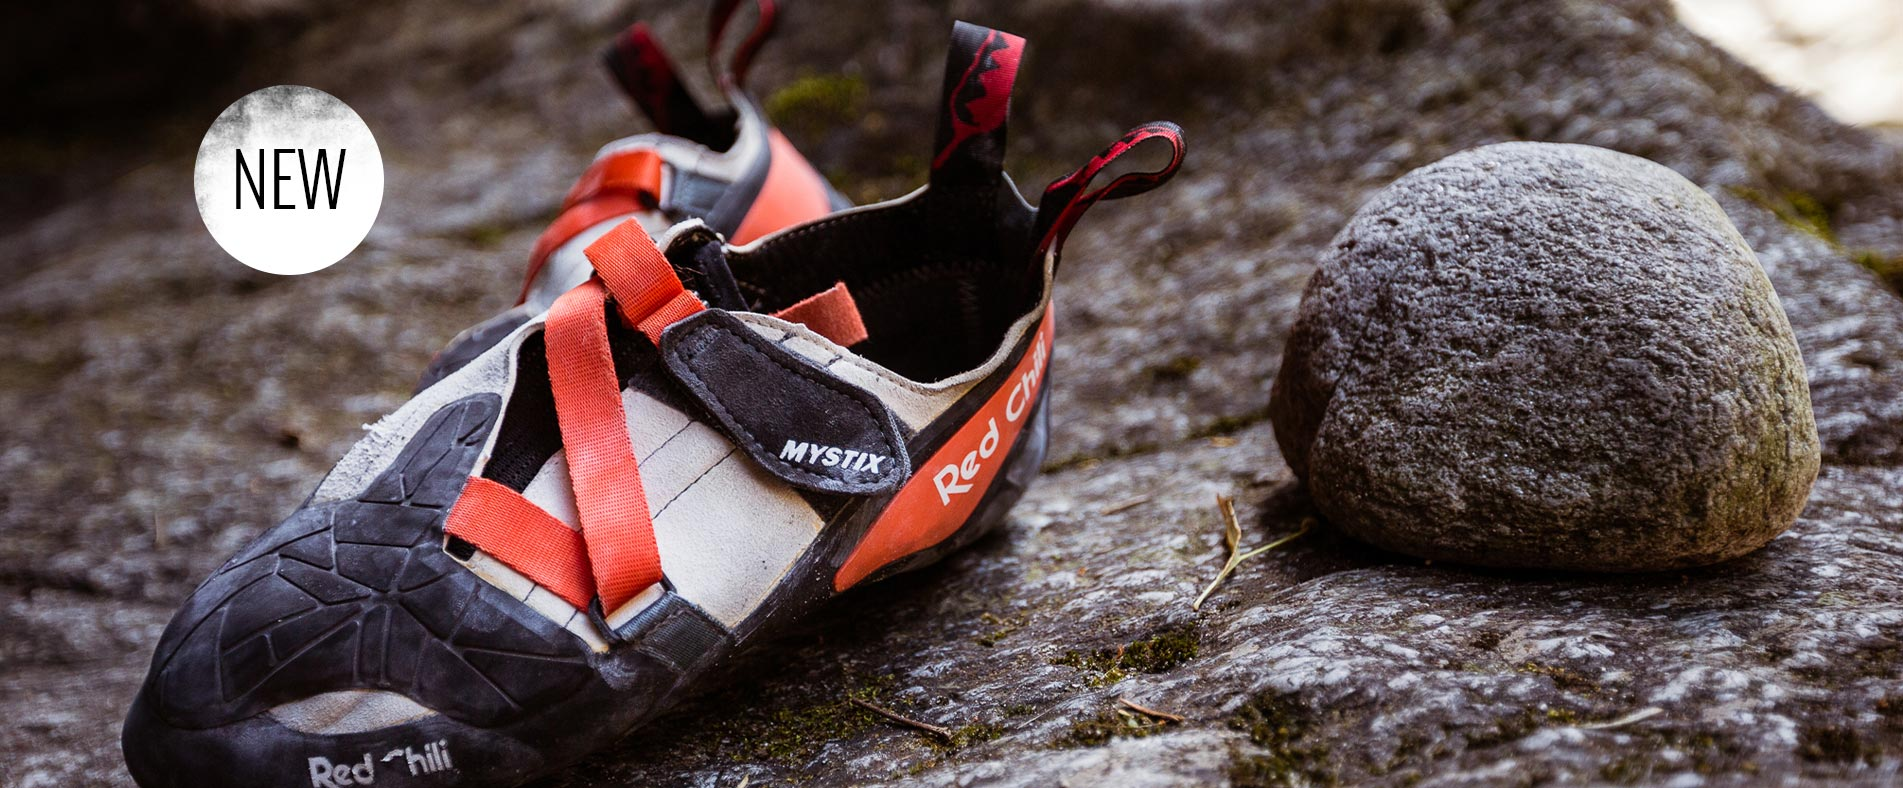 red chili new collection 2021 climbing shoe mystix